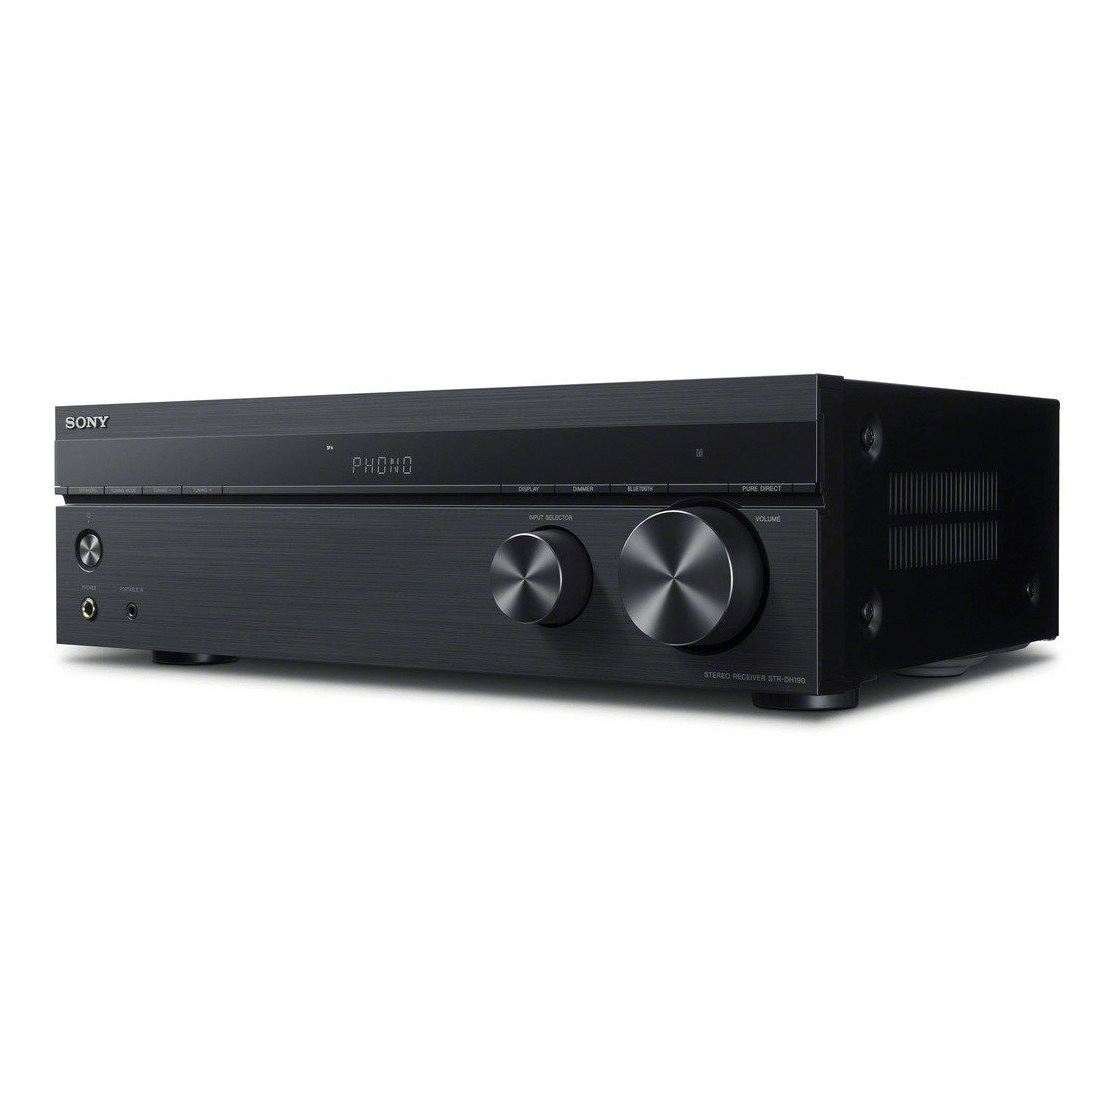 sony str dh190 stereo receiver w phono bluetooth. Black Bedroom Furniture Sets. Home Design Ideas